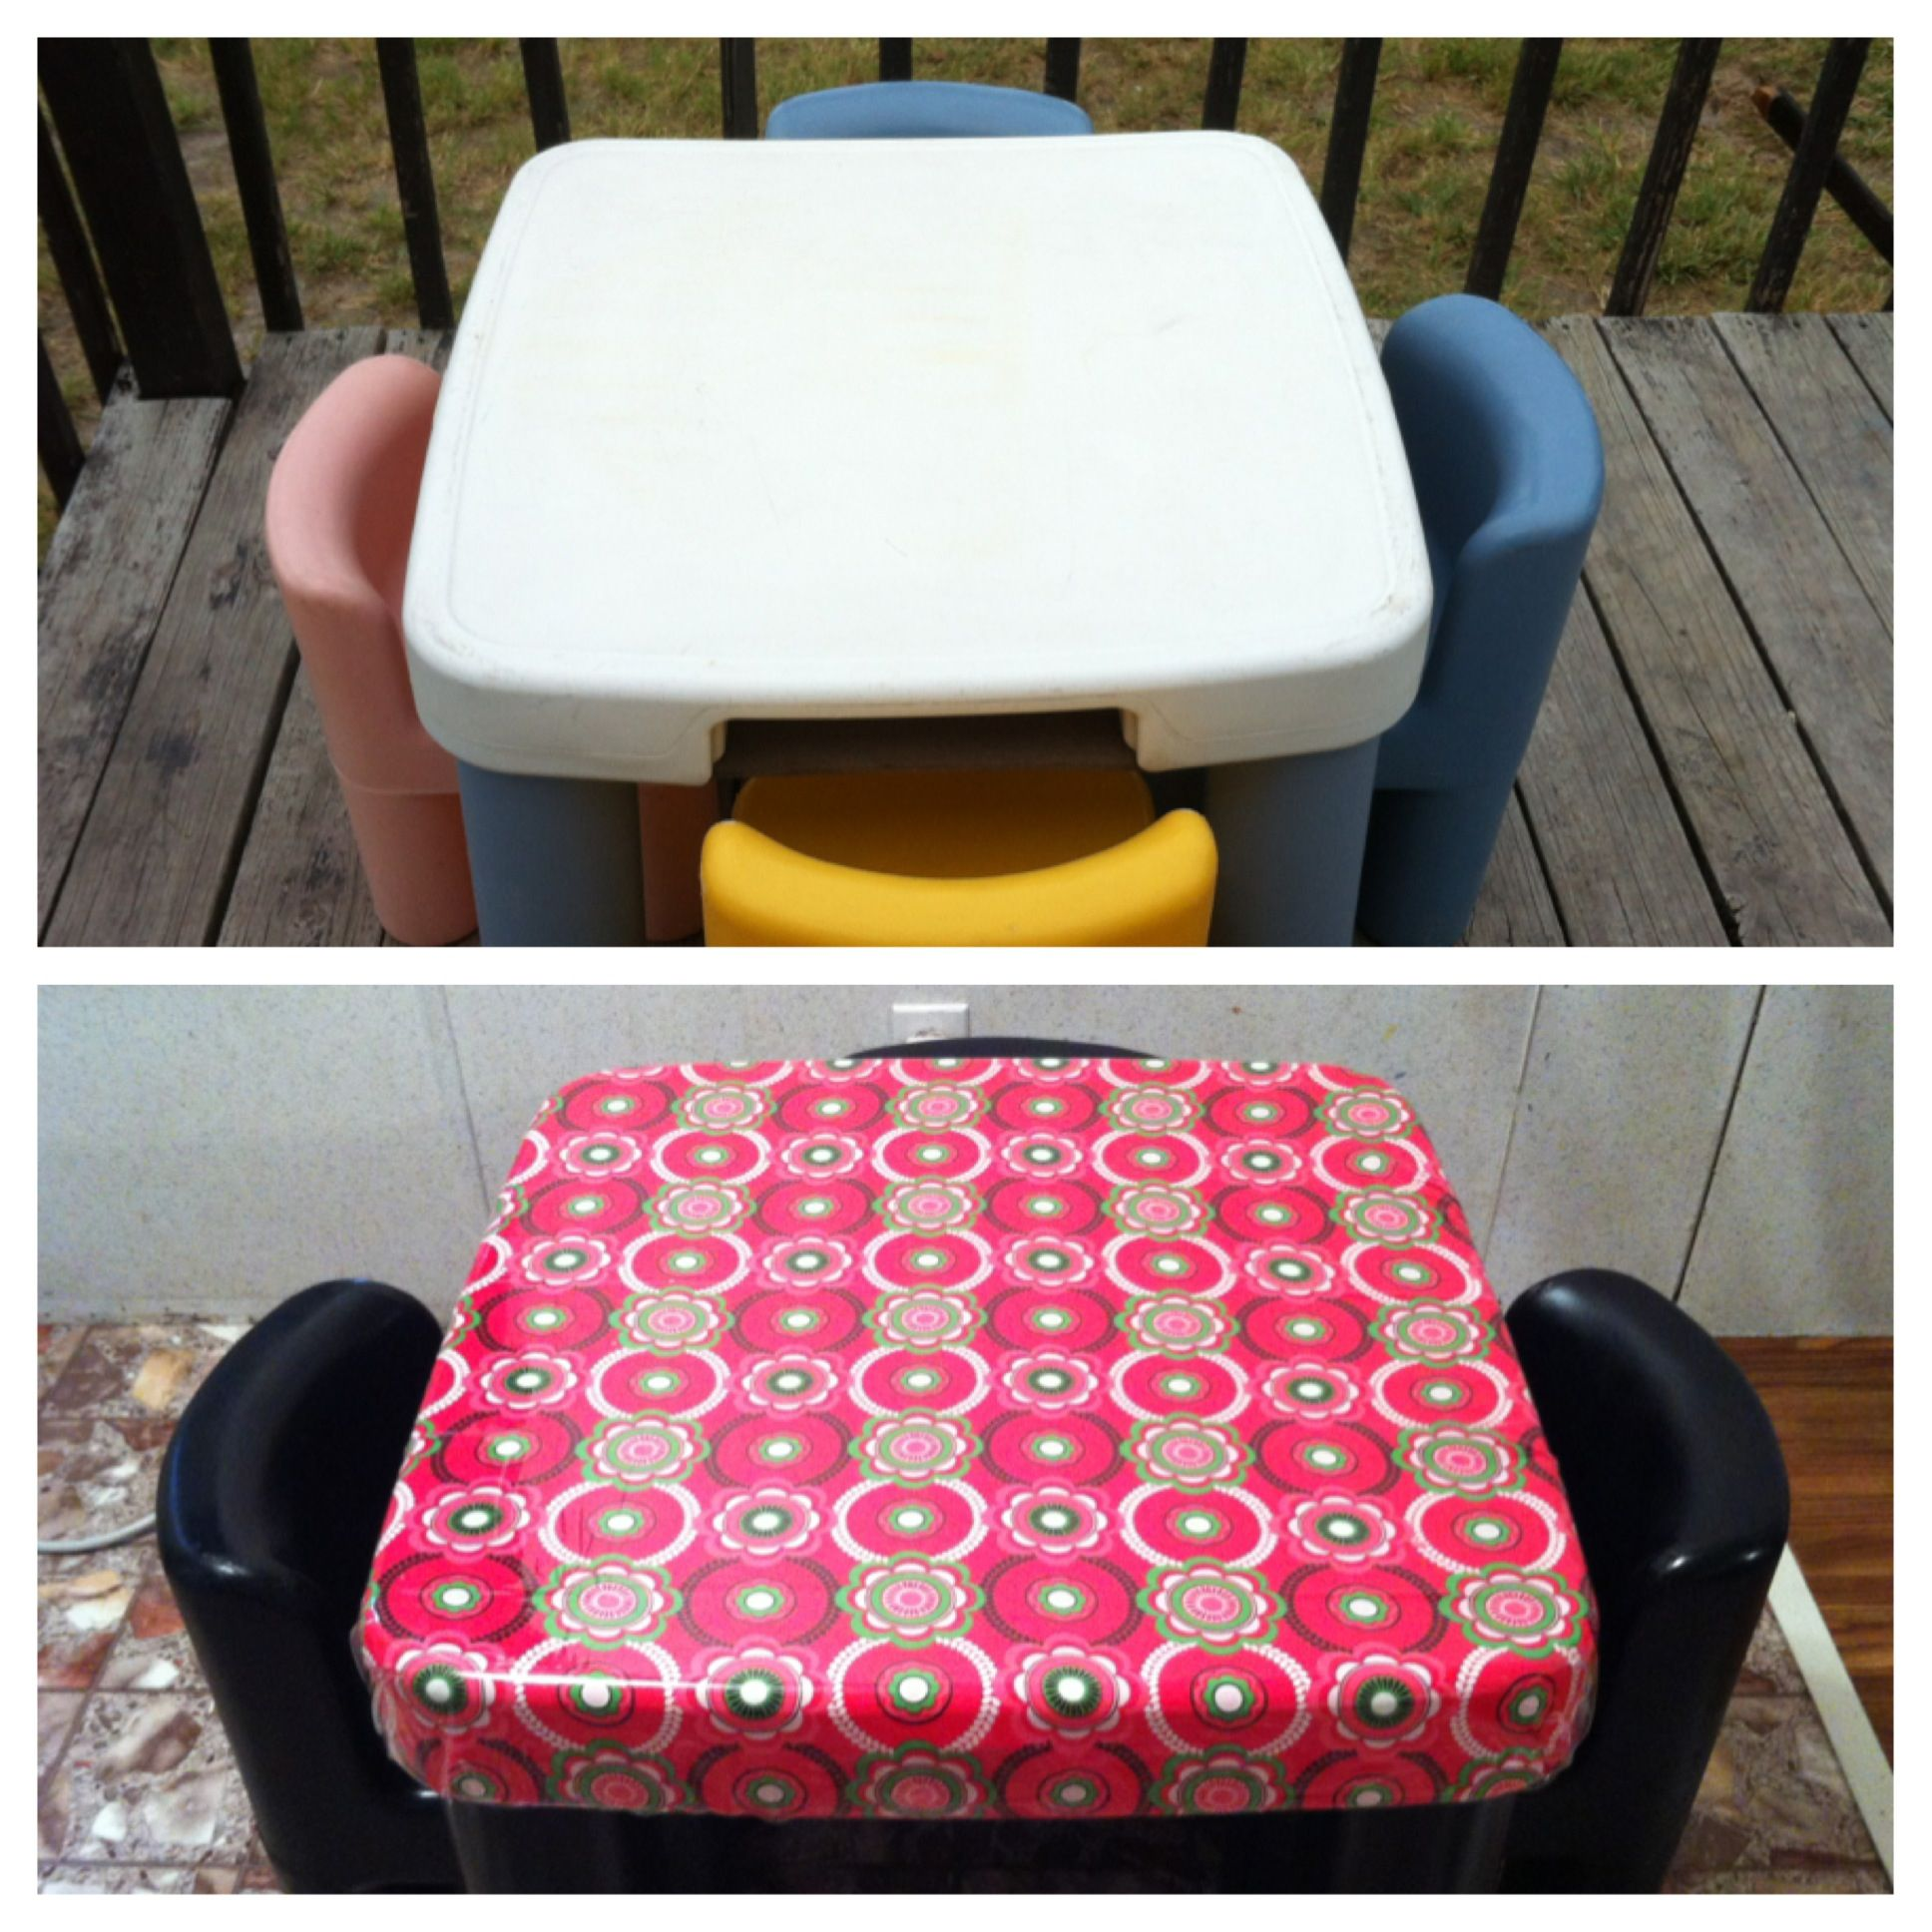 Little tikes table and chairs pink - 17 Best Images About Little Tikes On Pinterest Valspar Beauty Salons And Vintage